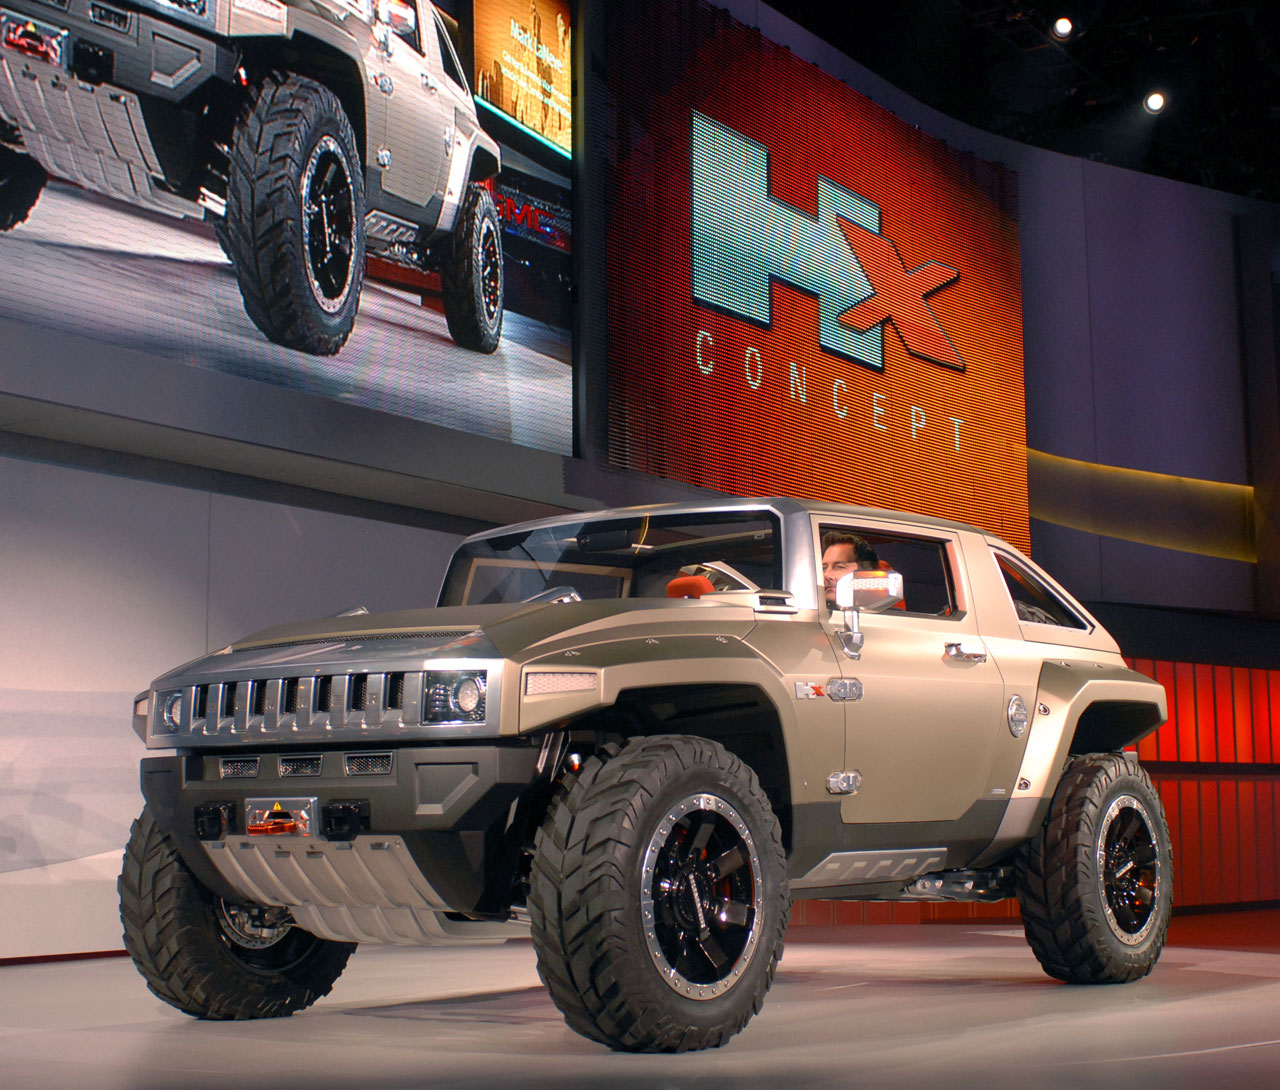 Hummer HX Concept Detroit 12 debut - Car Body Design | detroit hummer